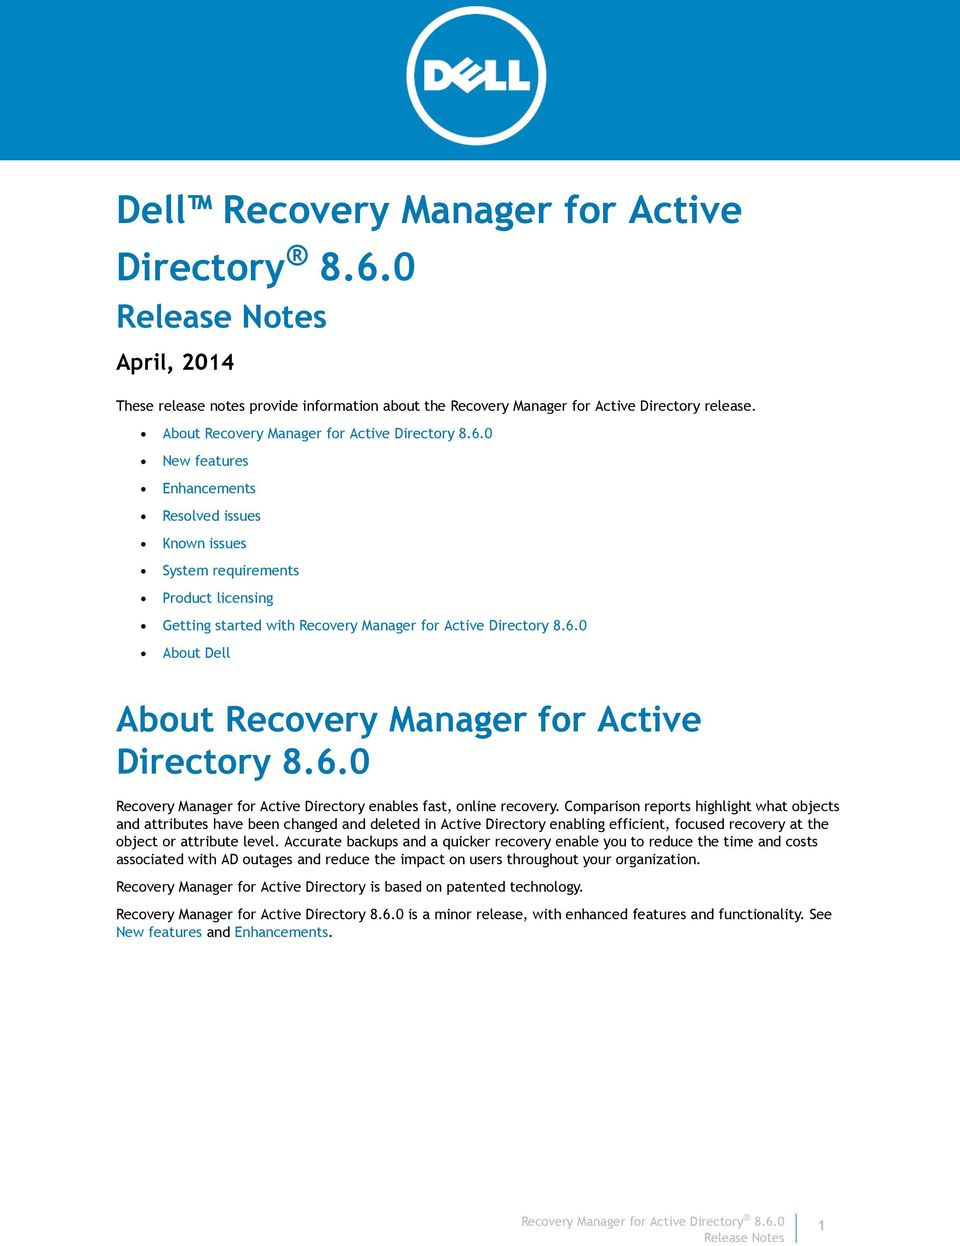 0 New features Enhancements Resolved issues Known issues System requirements Product licensing Getting started with Recovery Manager for Active Directory 8.6.